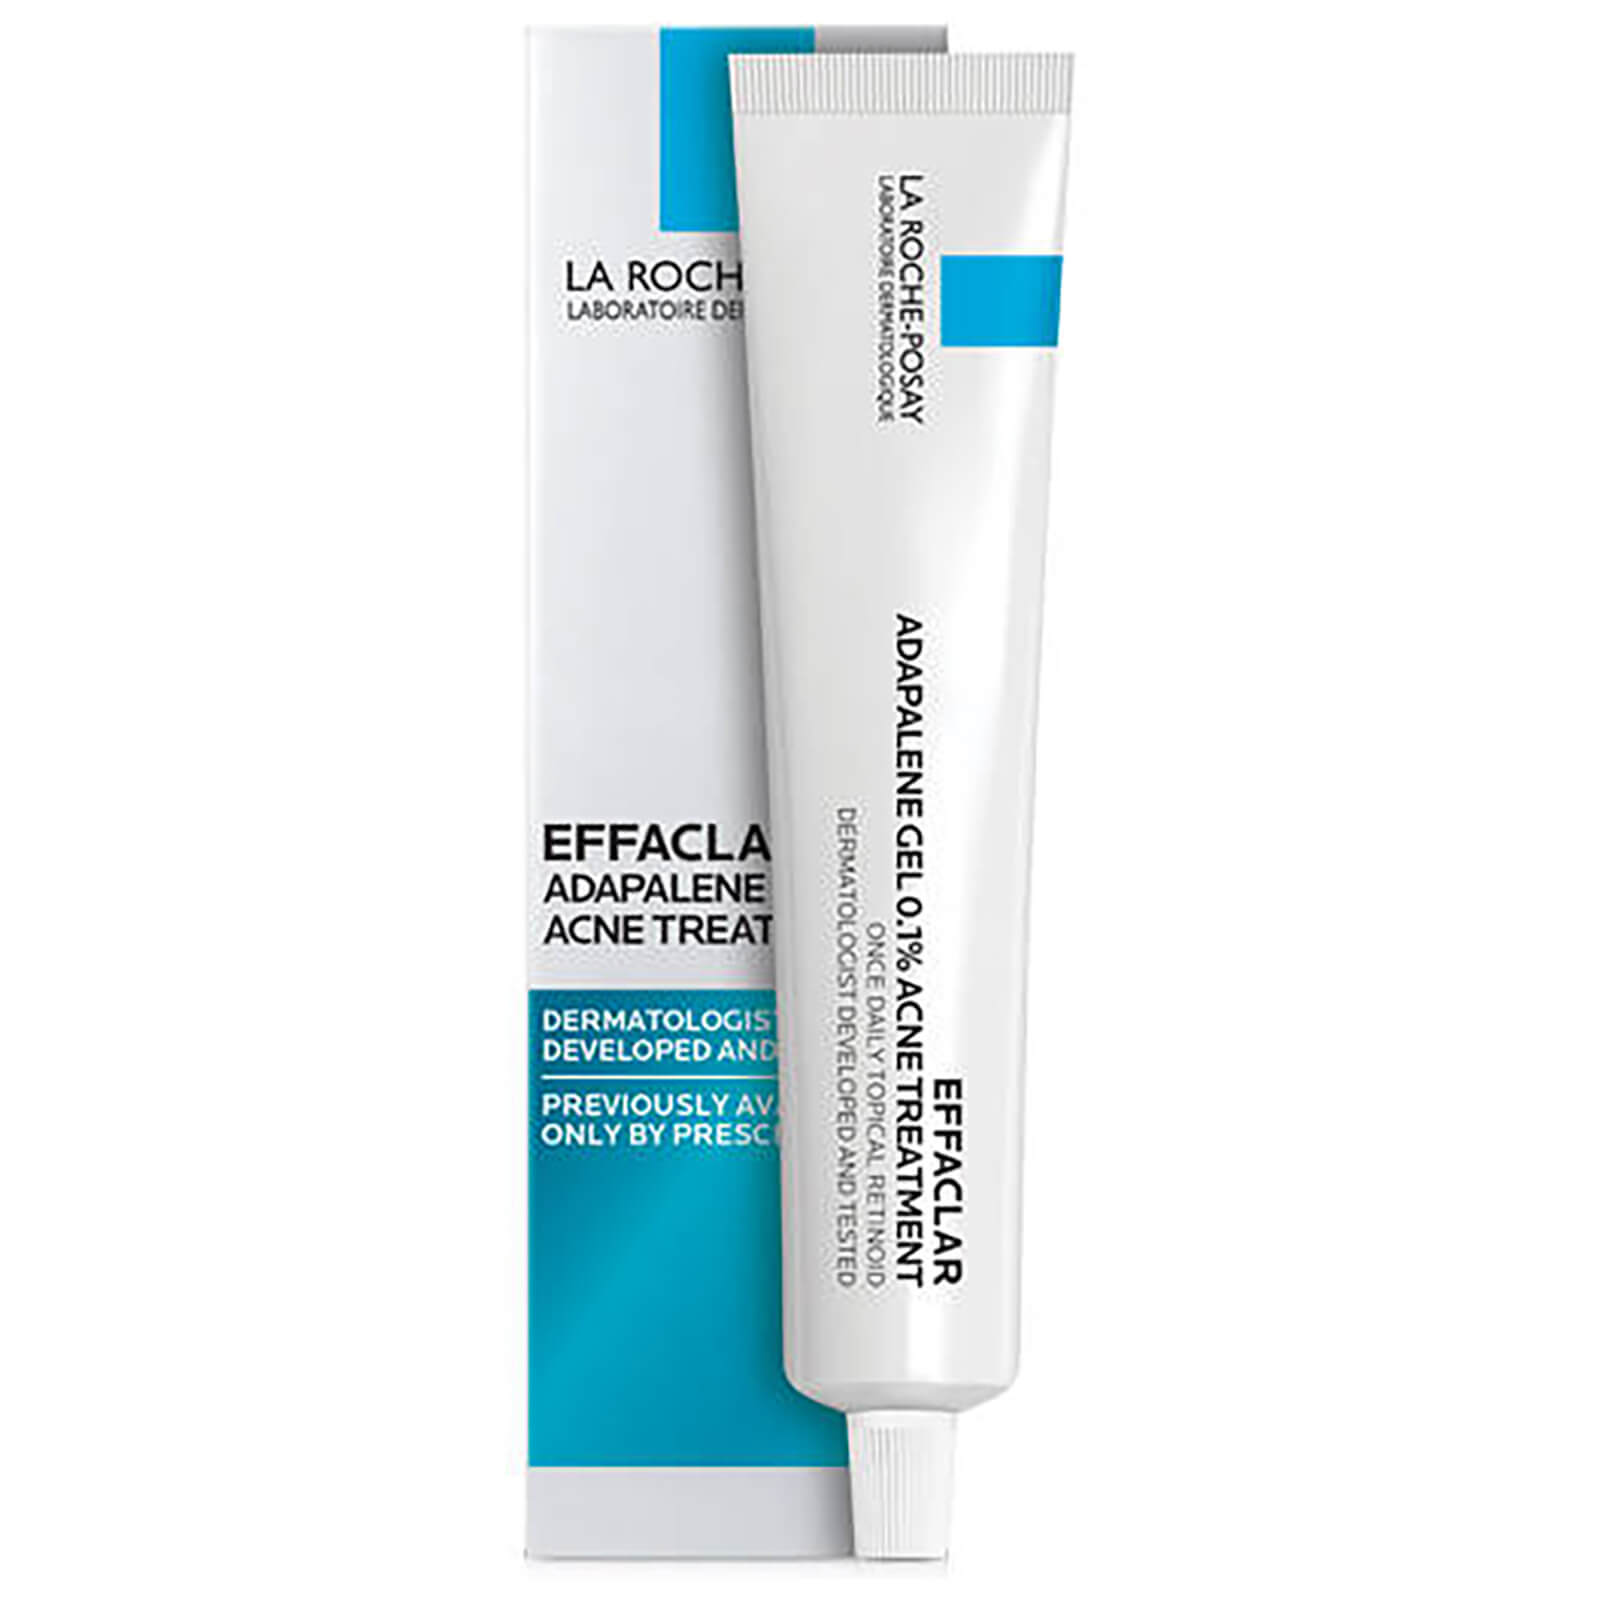 La Roche Posay Effaclar Adapalene Gel 0 1 Retinoid Acne Treatment